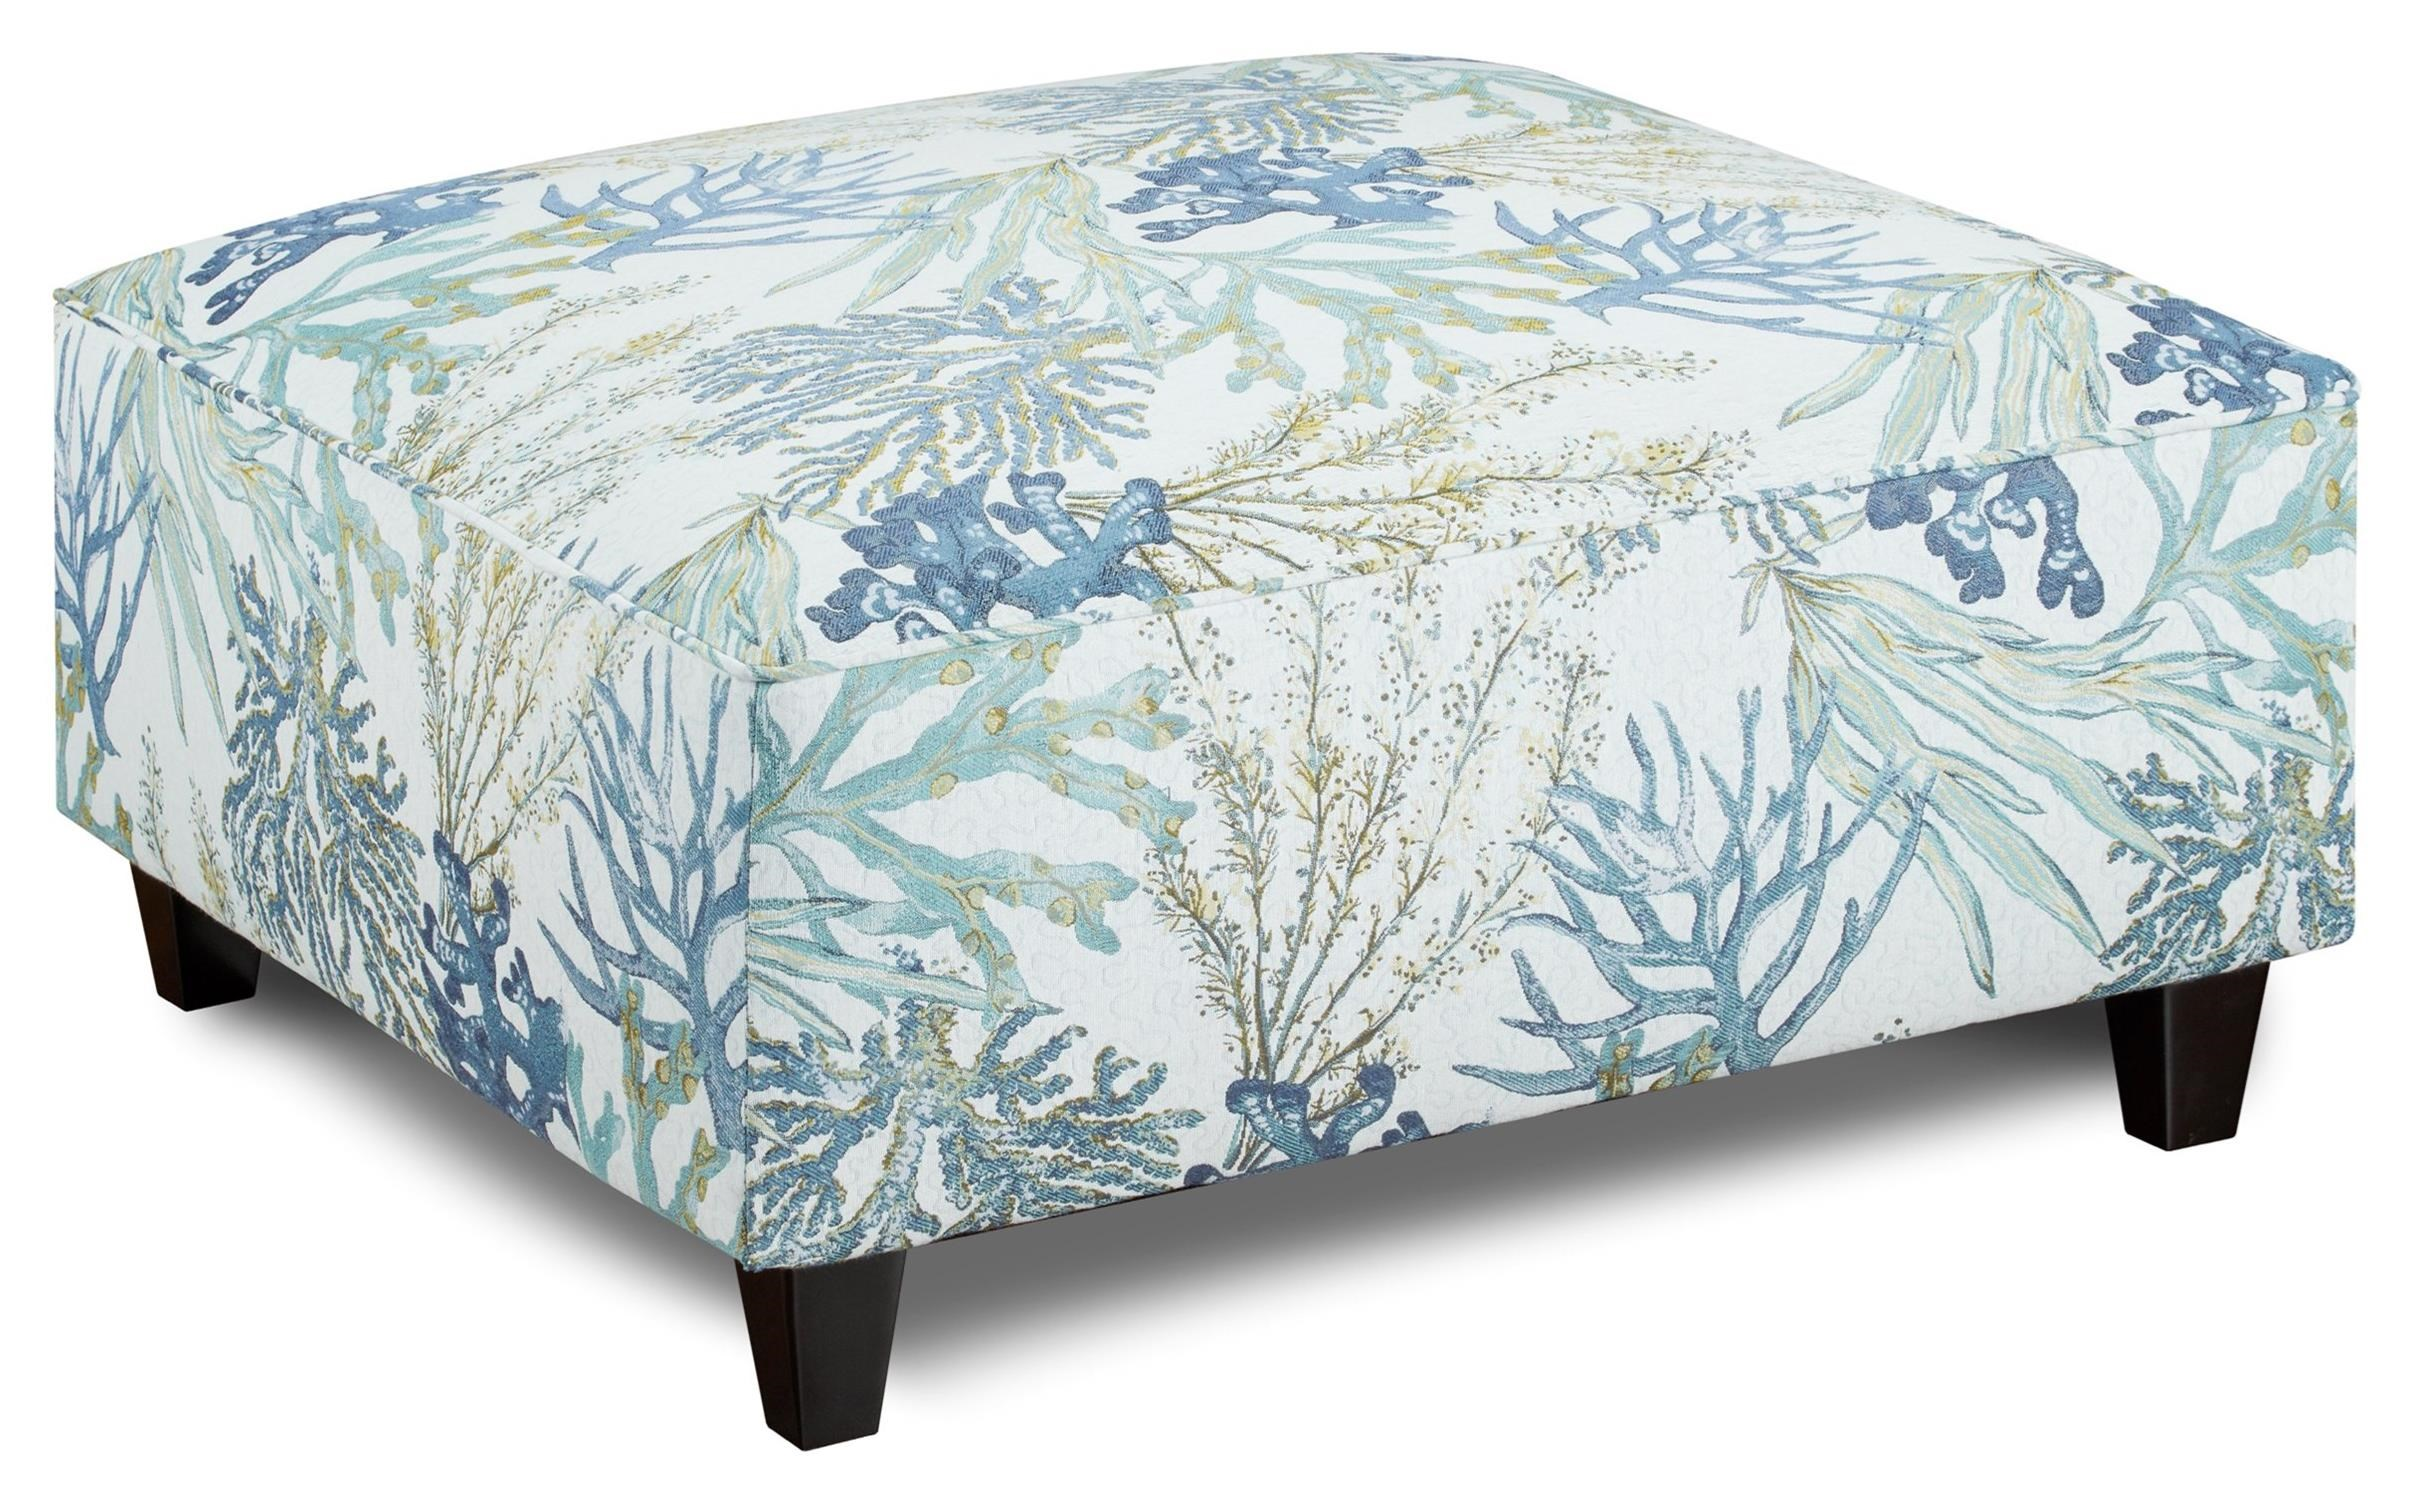 109 Square Ottoman by VFM Signature at Virginia Furniture Market